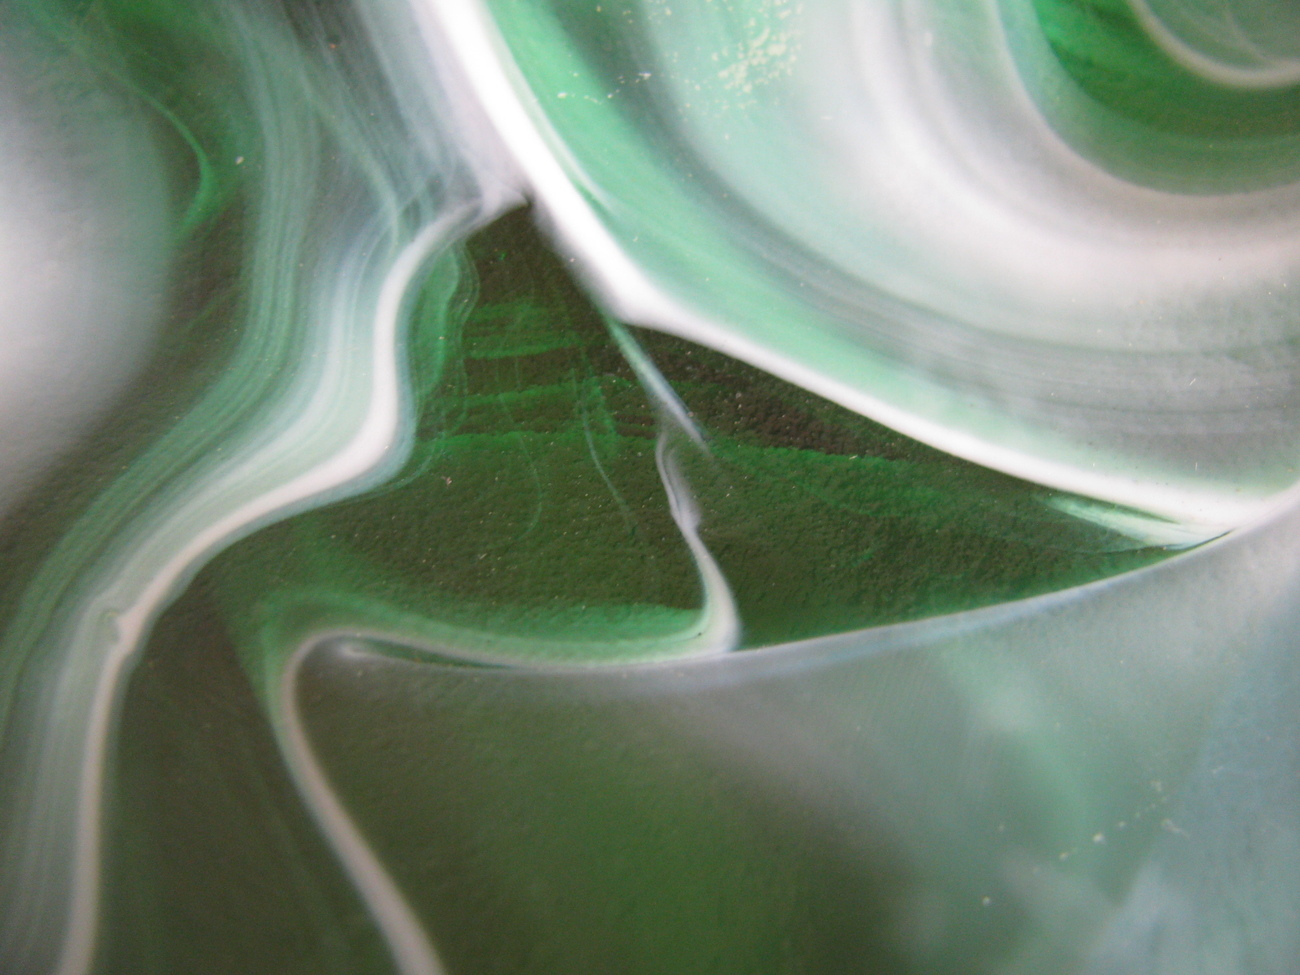 Vintage Green and White Swirled Glass Vessel